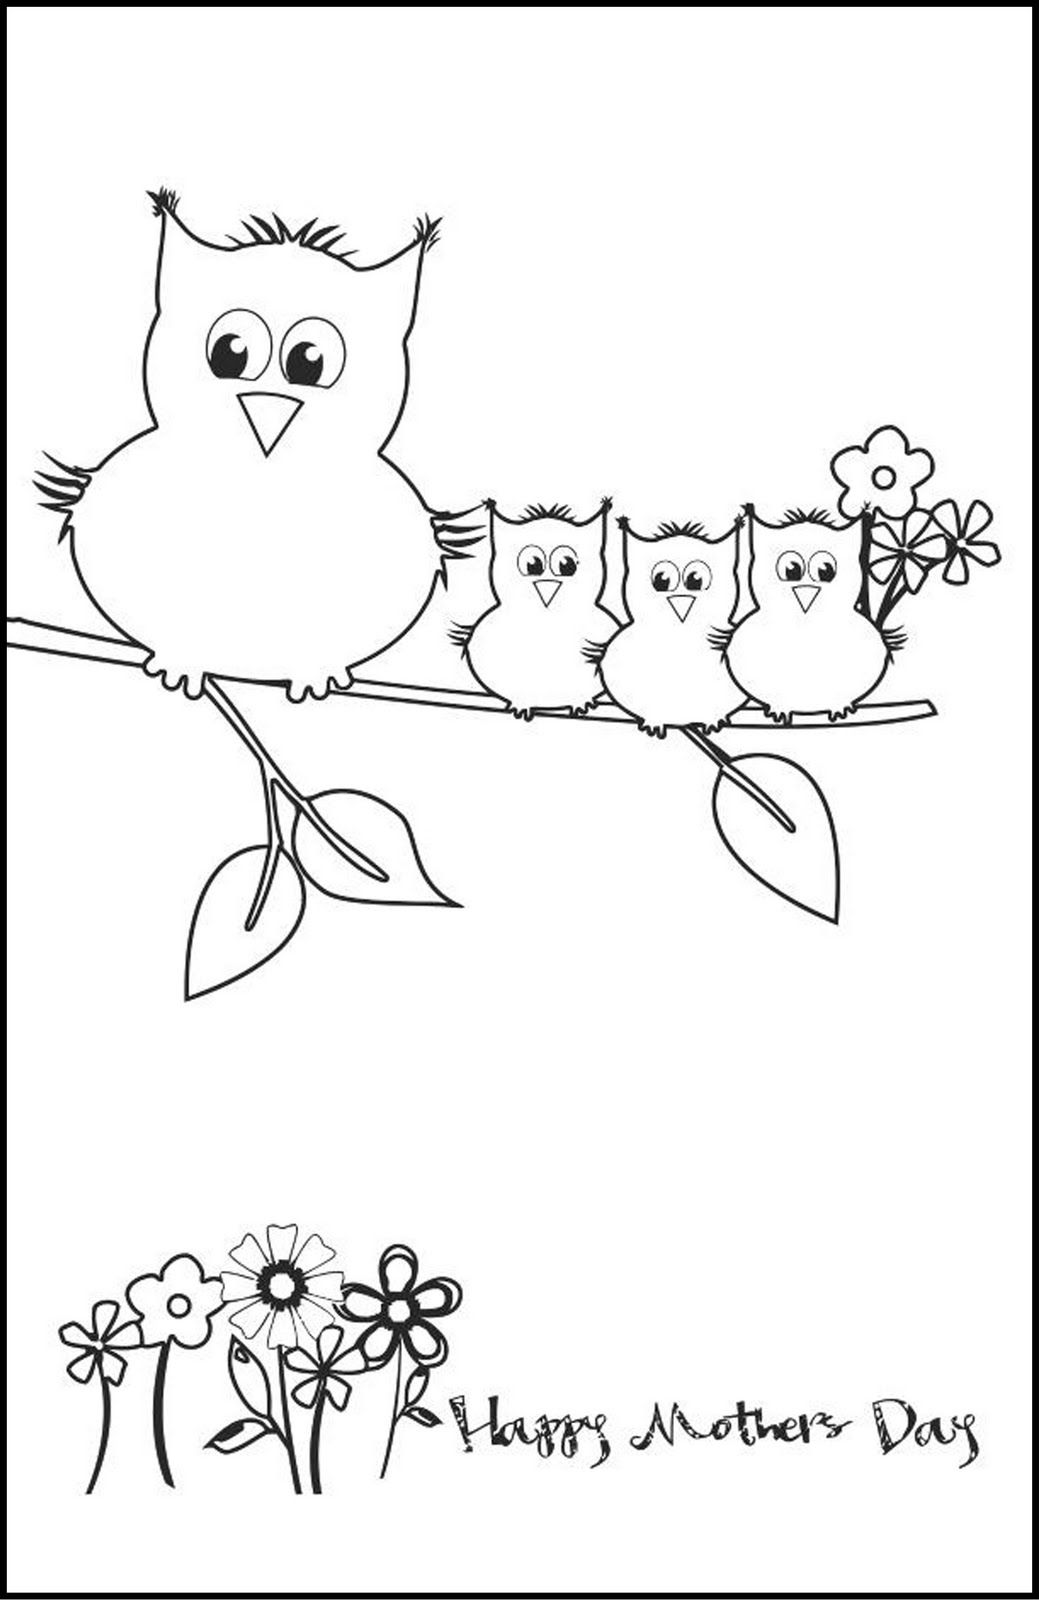 coloring sheet mother 39 s day pinterest coloring owl and coloring sheets. Black Bedroom Furniture Sets. Home Design Ideas